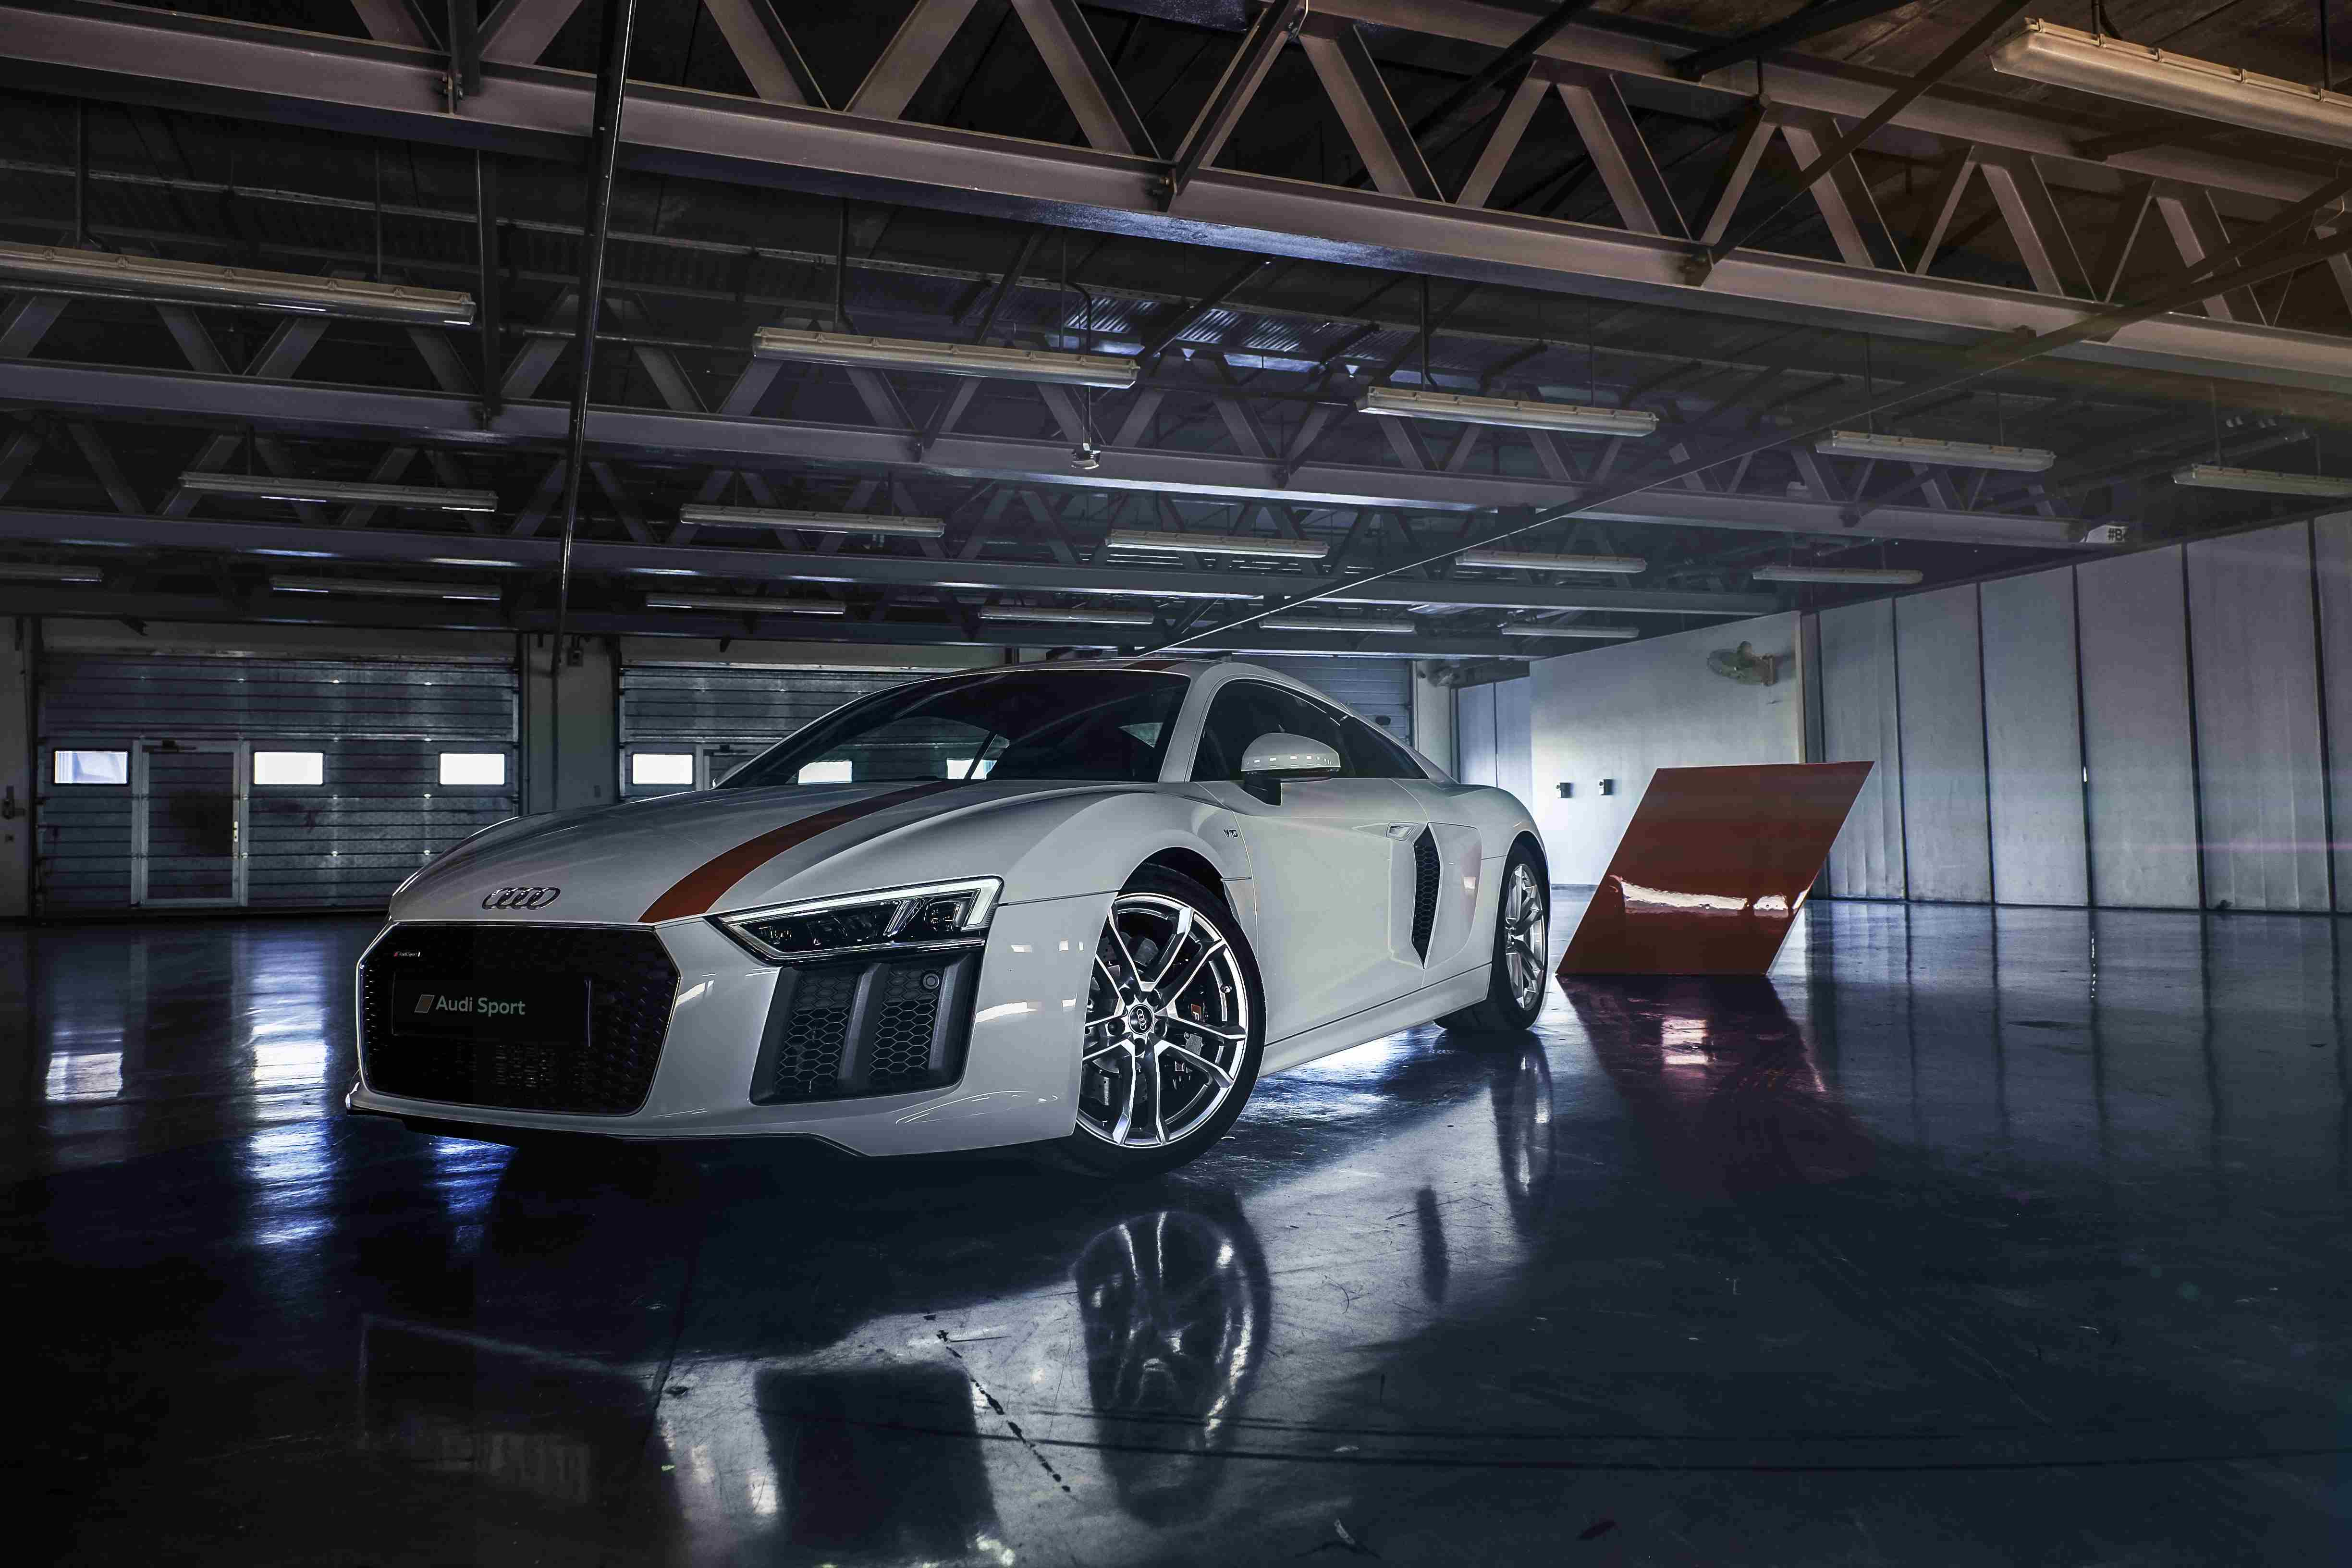 New Limited Edition Audi R8 V10 Rws Coming Soon Carpricesae